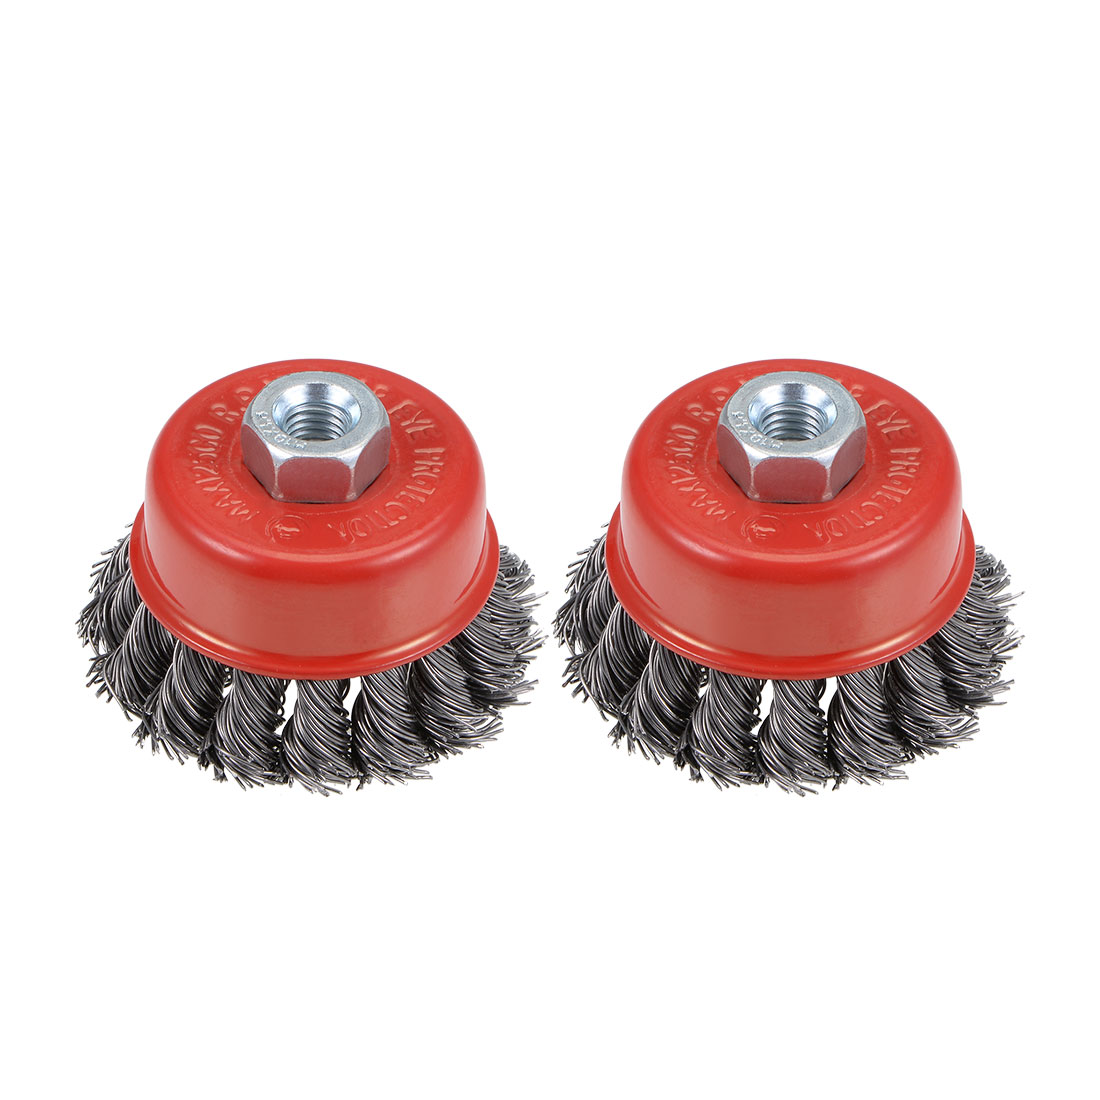 2-1/2-Inch Wire Cup Brush Twist Knotted Crimped Steel w M10 Threaded Hole 2 Pcs